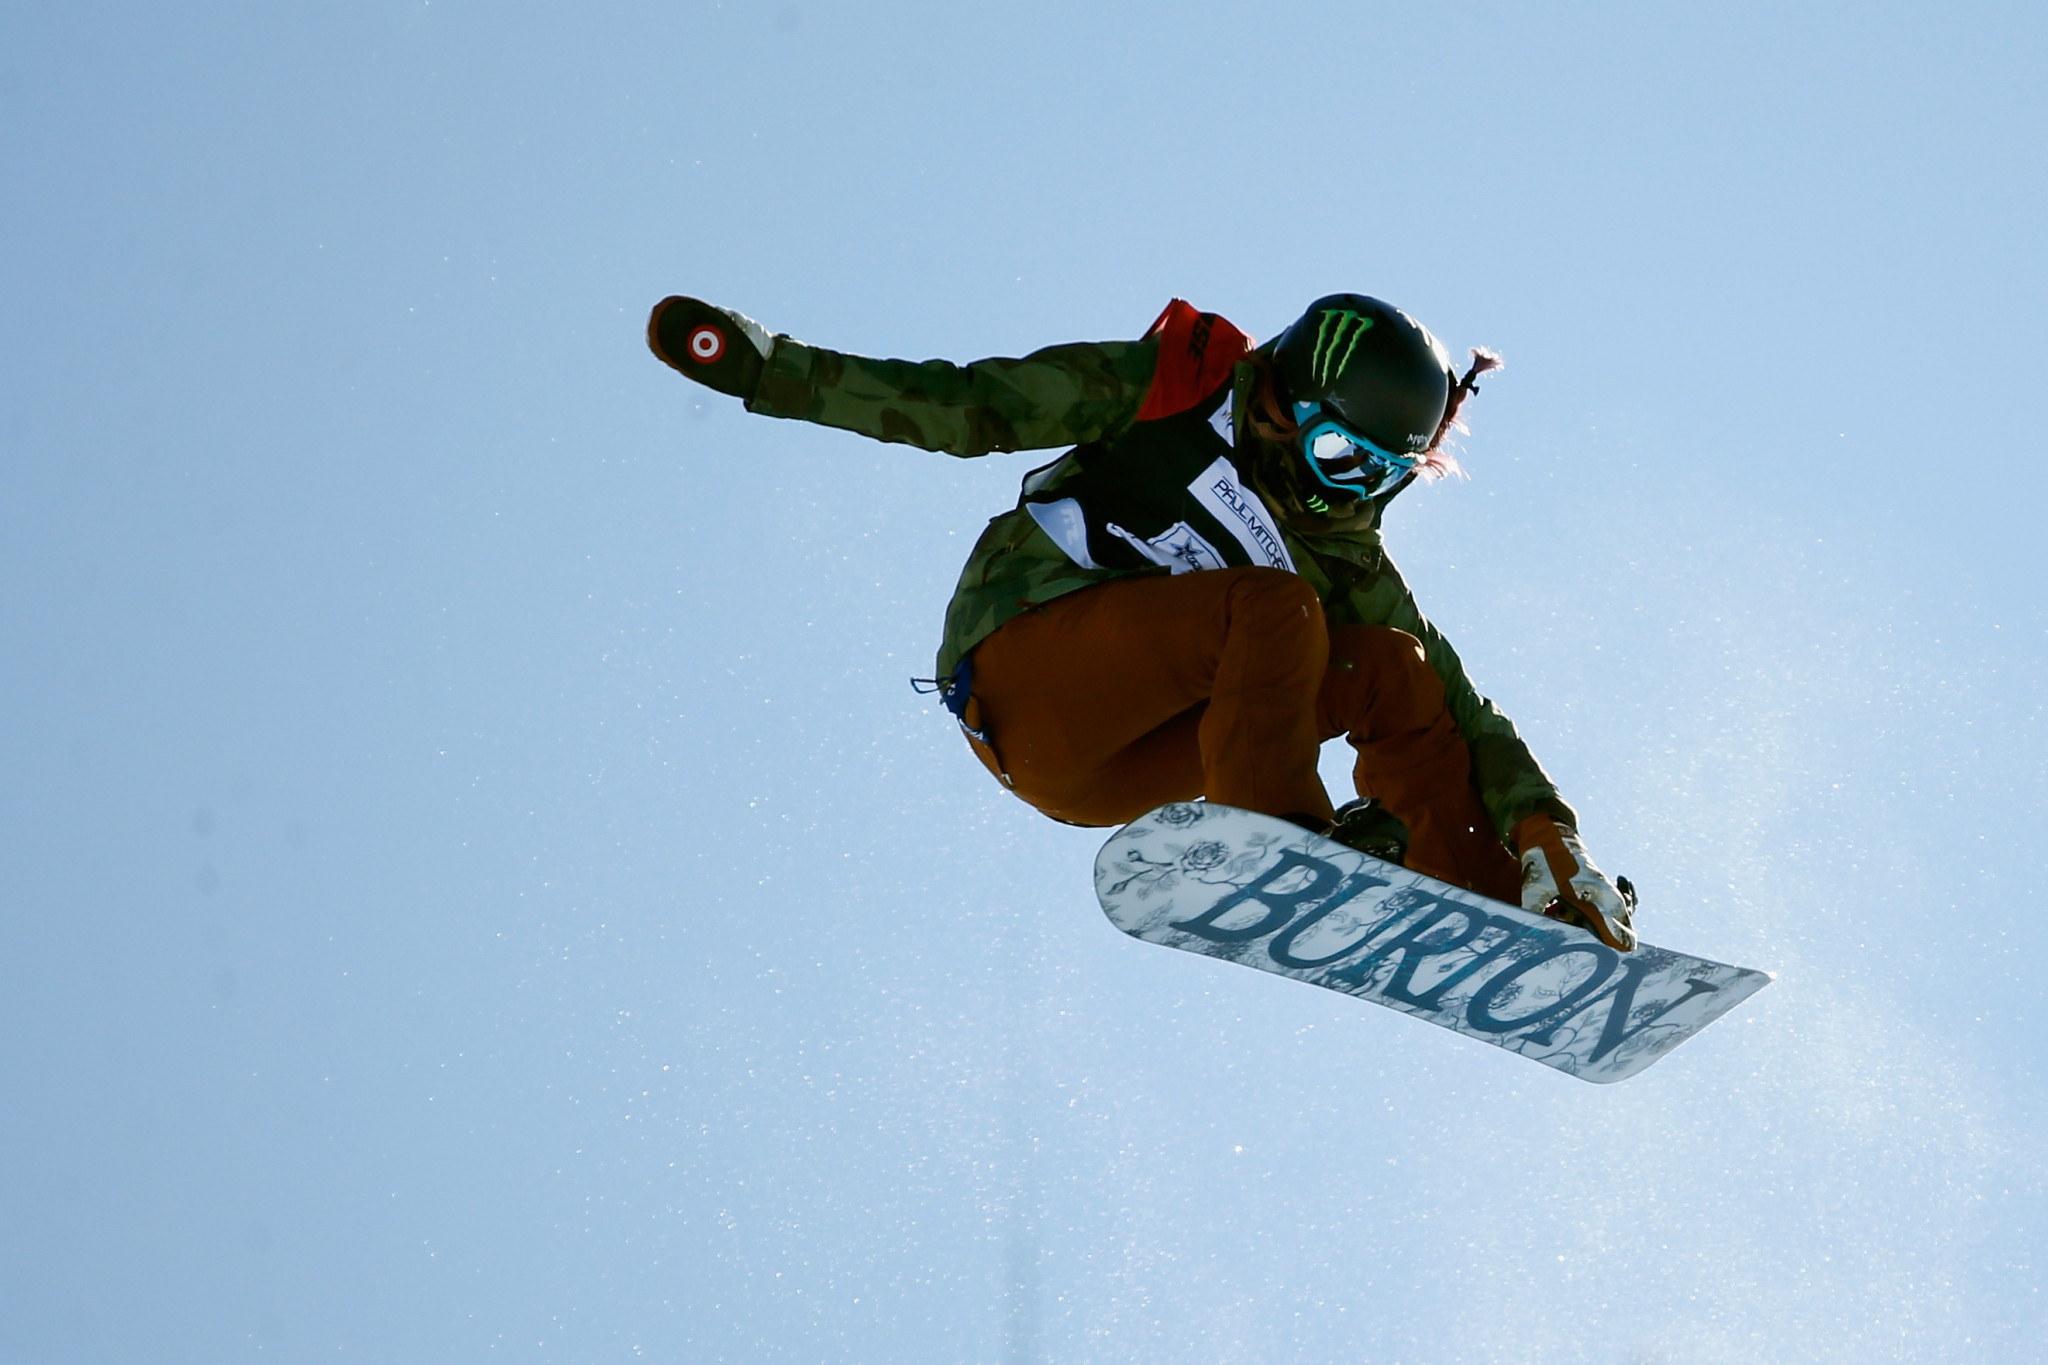 Chloe Kim led an American podium in the women's event ©Getty Images